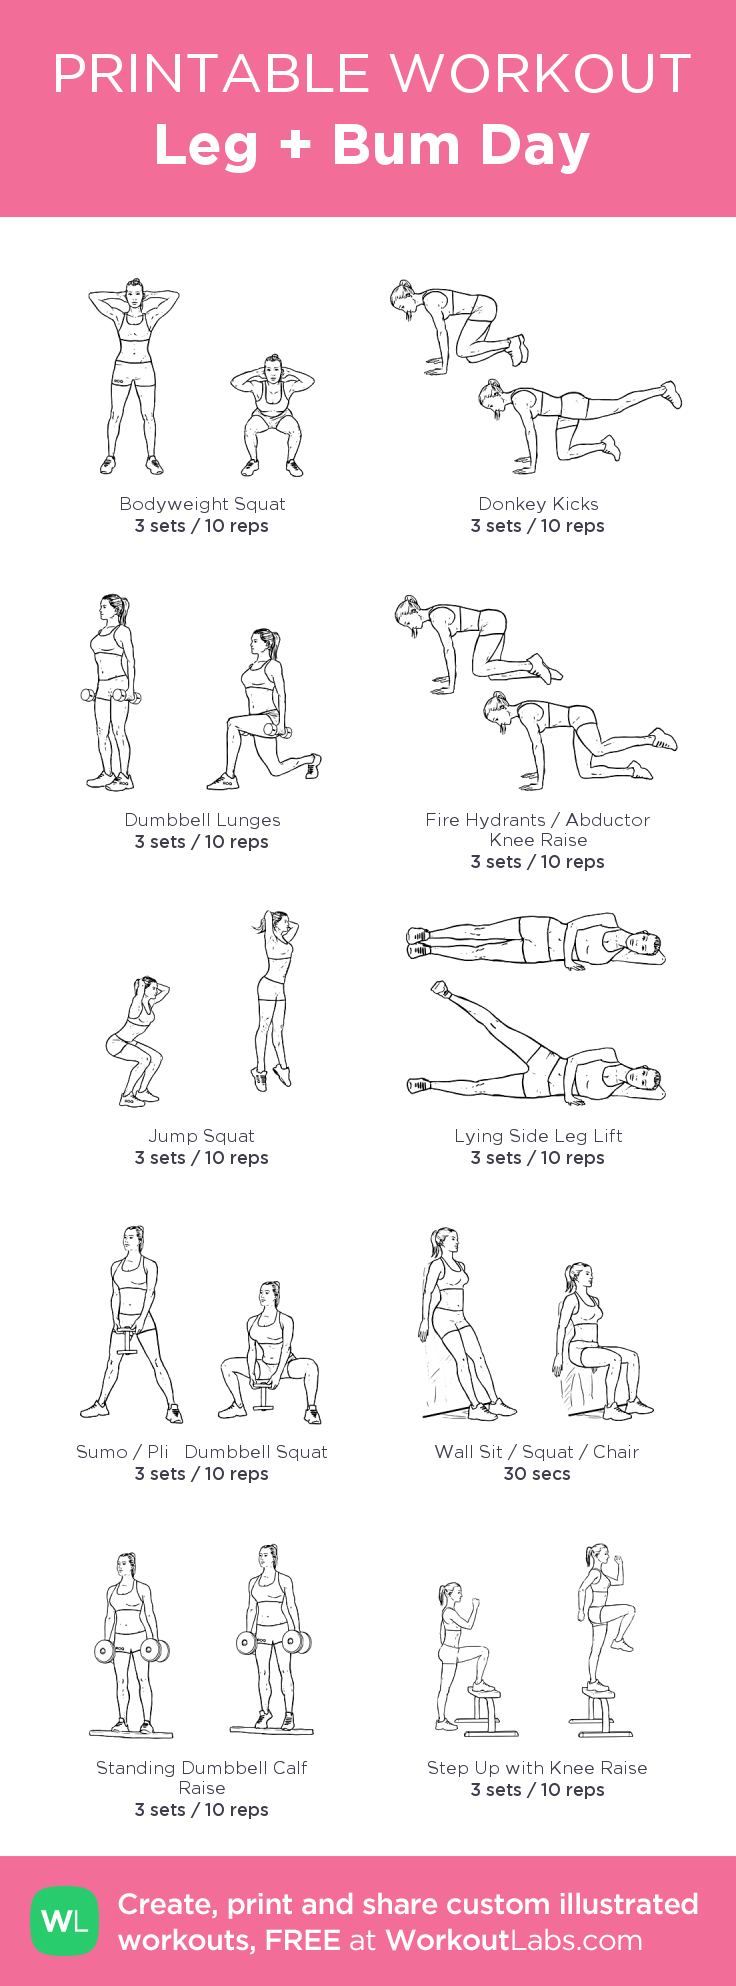 Leg Bum Day Workout Health Fitness Pinterest Mh Summer Sixpack Challenge The Dumbbell Circuit